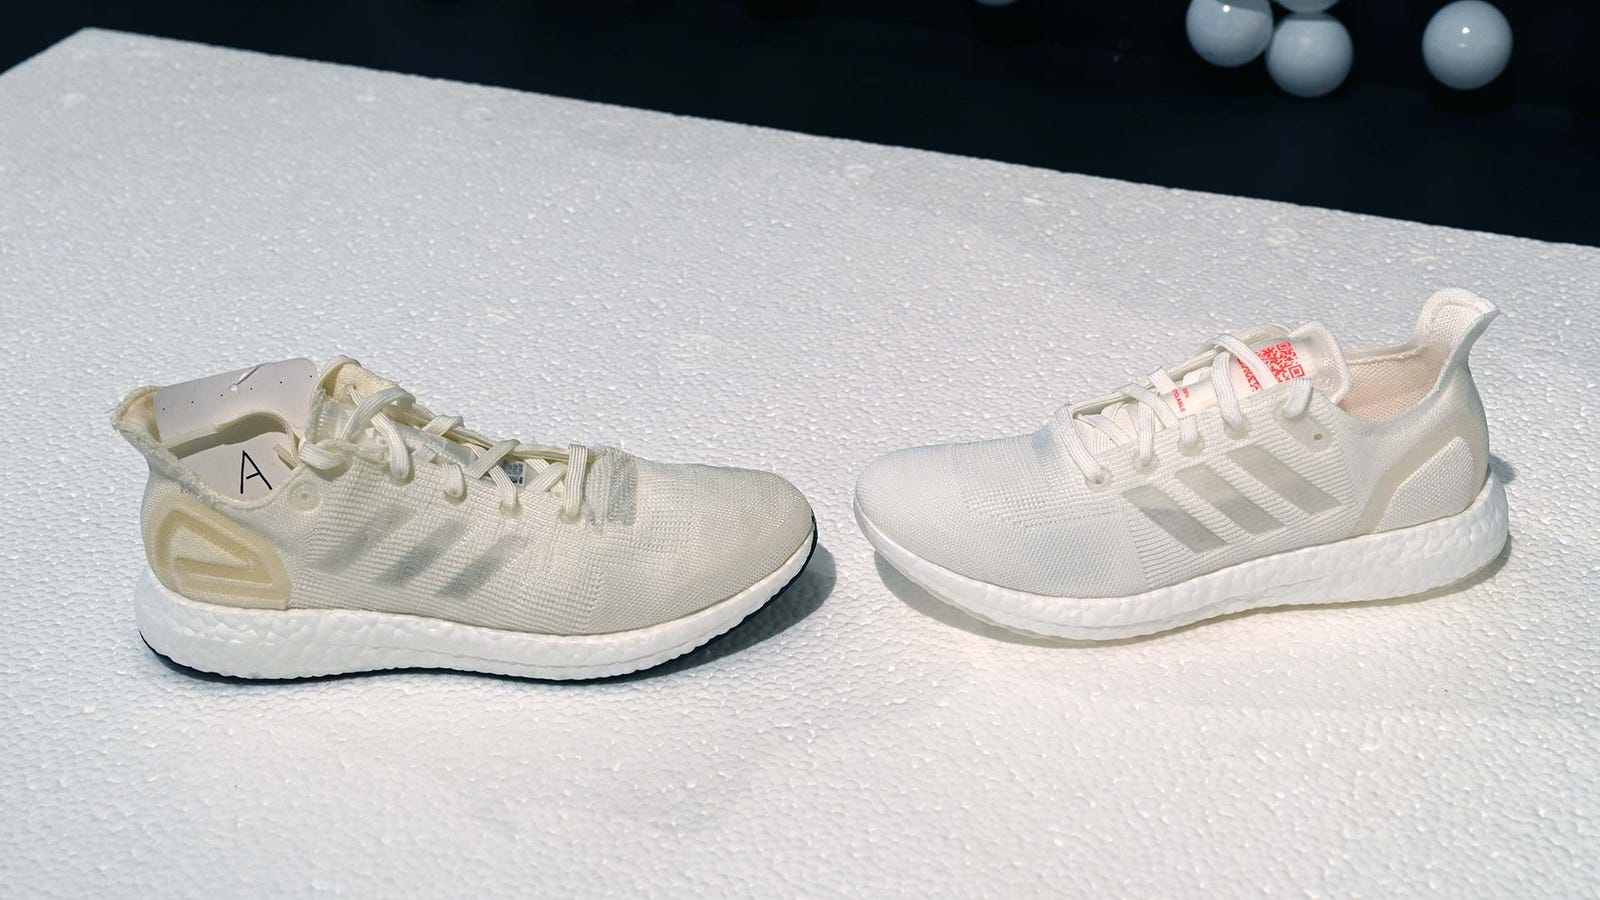 Here's a shot of an early Loop prototype next to a more final version. Side-by-side, you can see how much more precise Adidas' TPU manufacturing got.